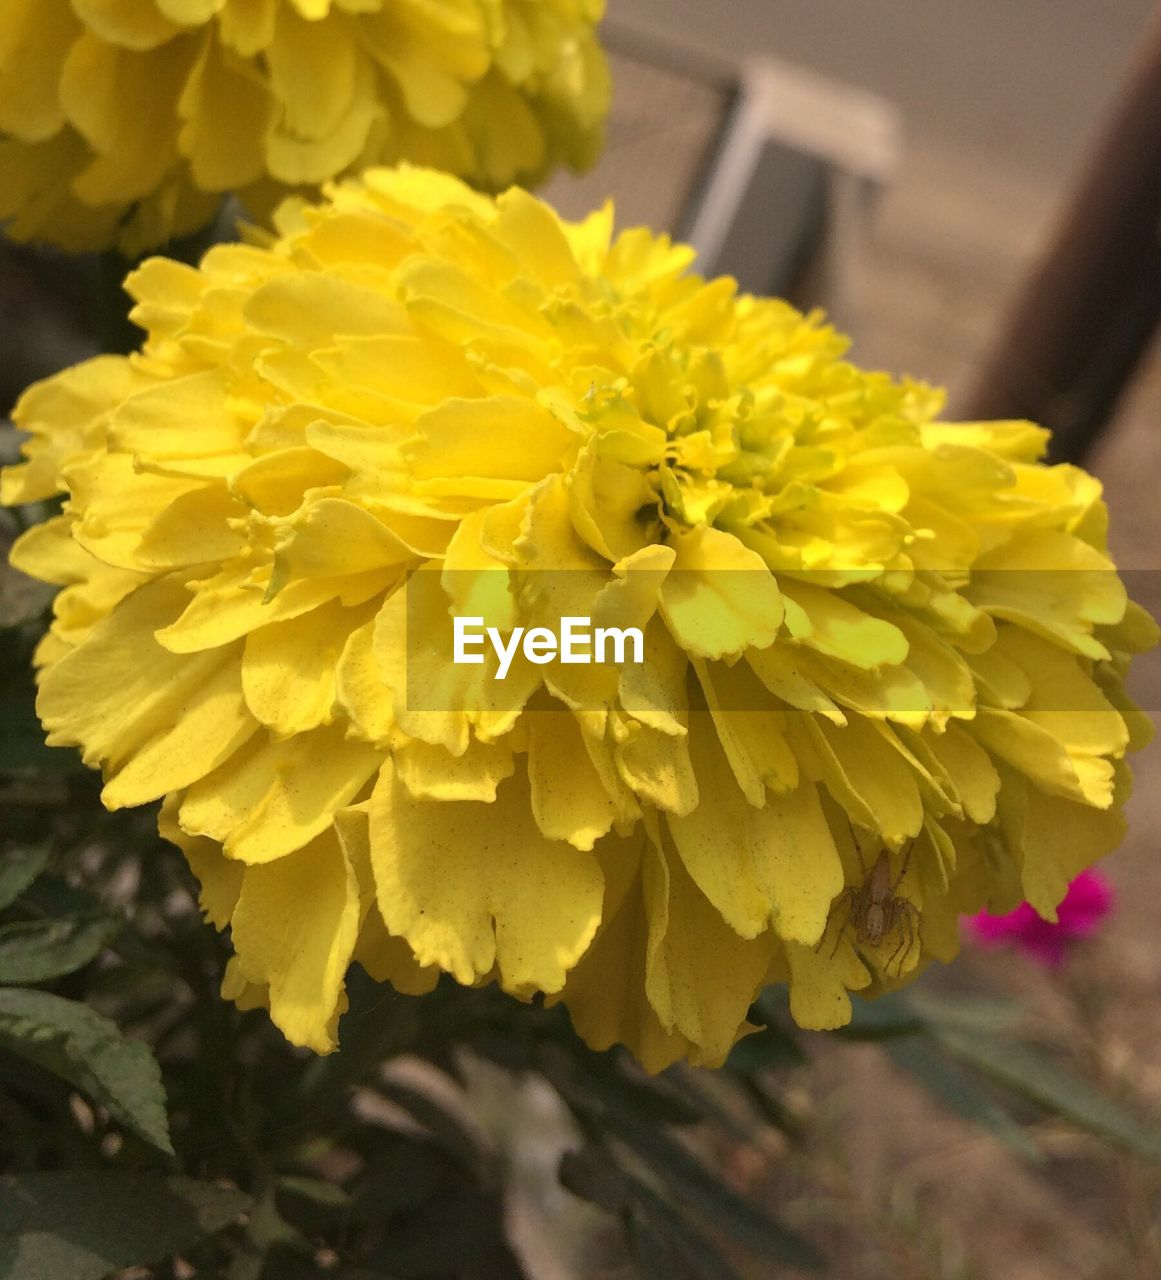 flower, yellow, fragility, freshness, petal, beauty in nature, flower head, nature, close-up, growth, botany, outdoors, plant, focus on foreground, day, springtime, no people, blooming